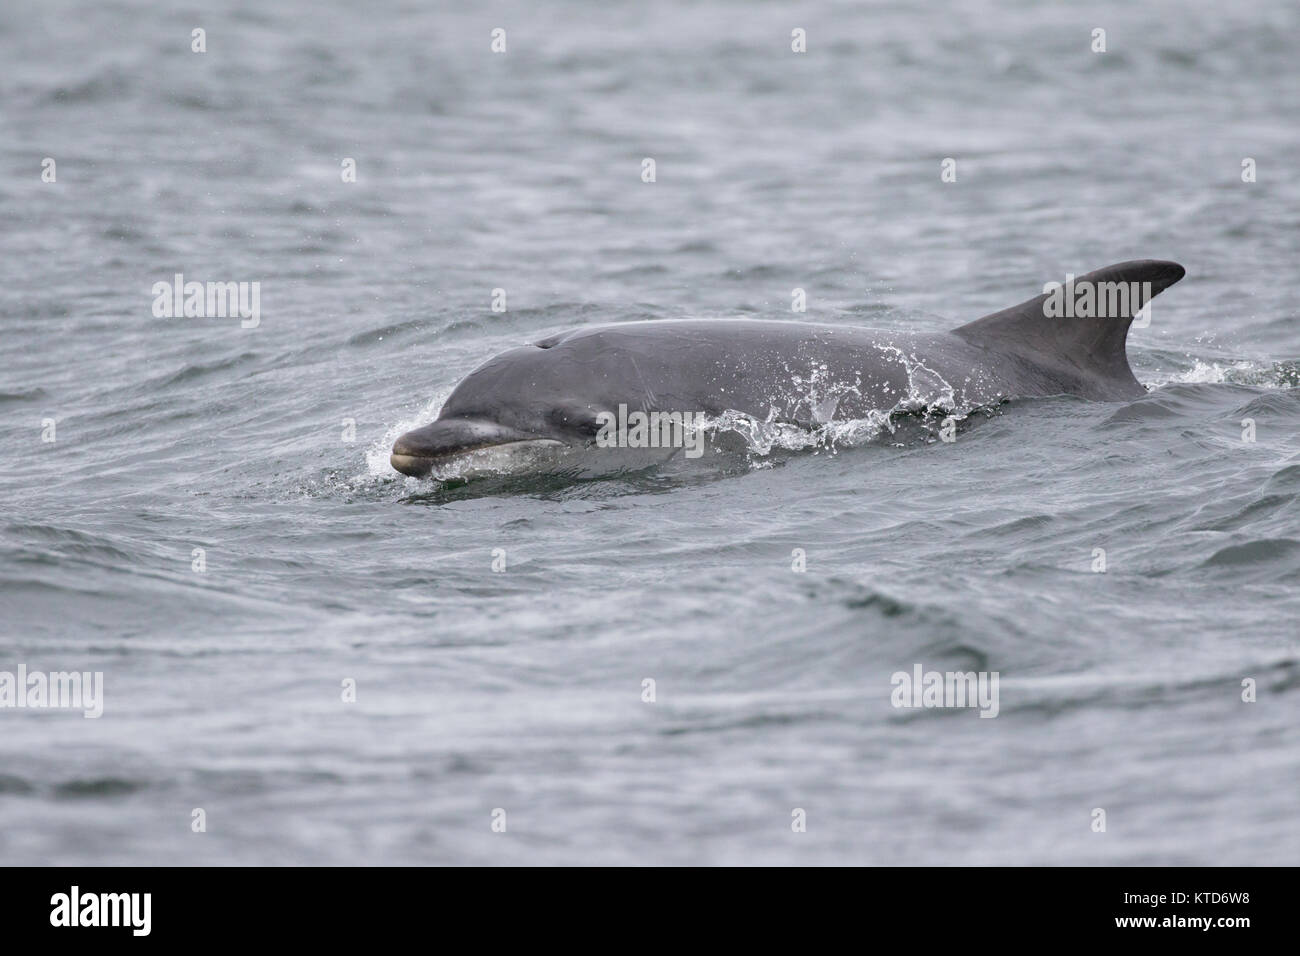 Bottlenose dolphin (Tursiops truncatus) swimming / surfing in the Moray Firth, Chanonry Point, Scotland, UK - Stock Image